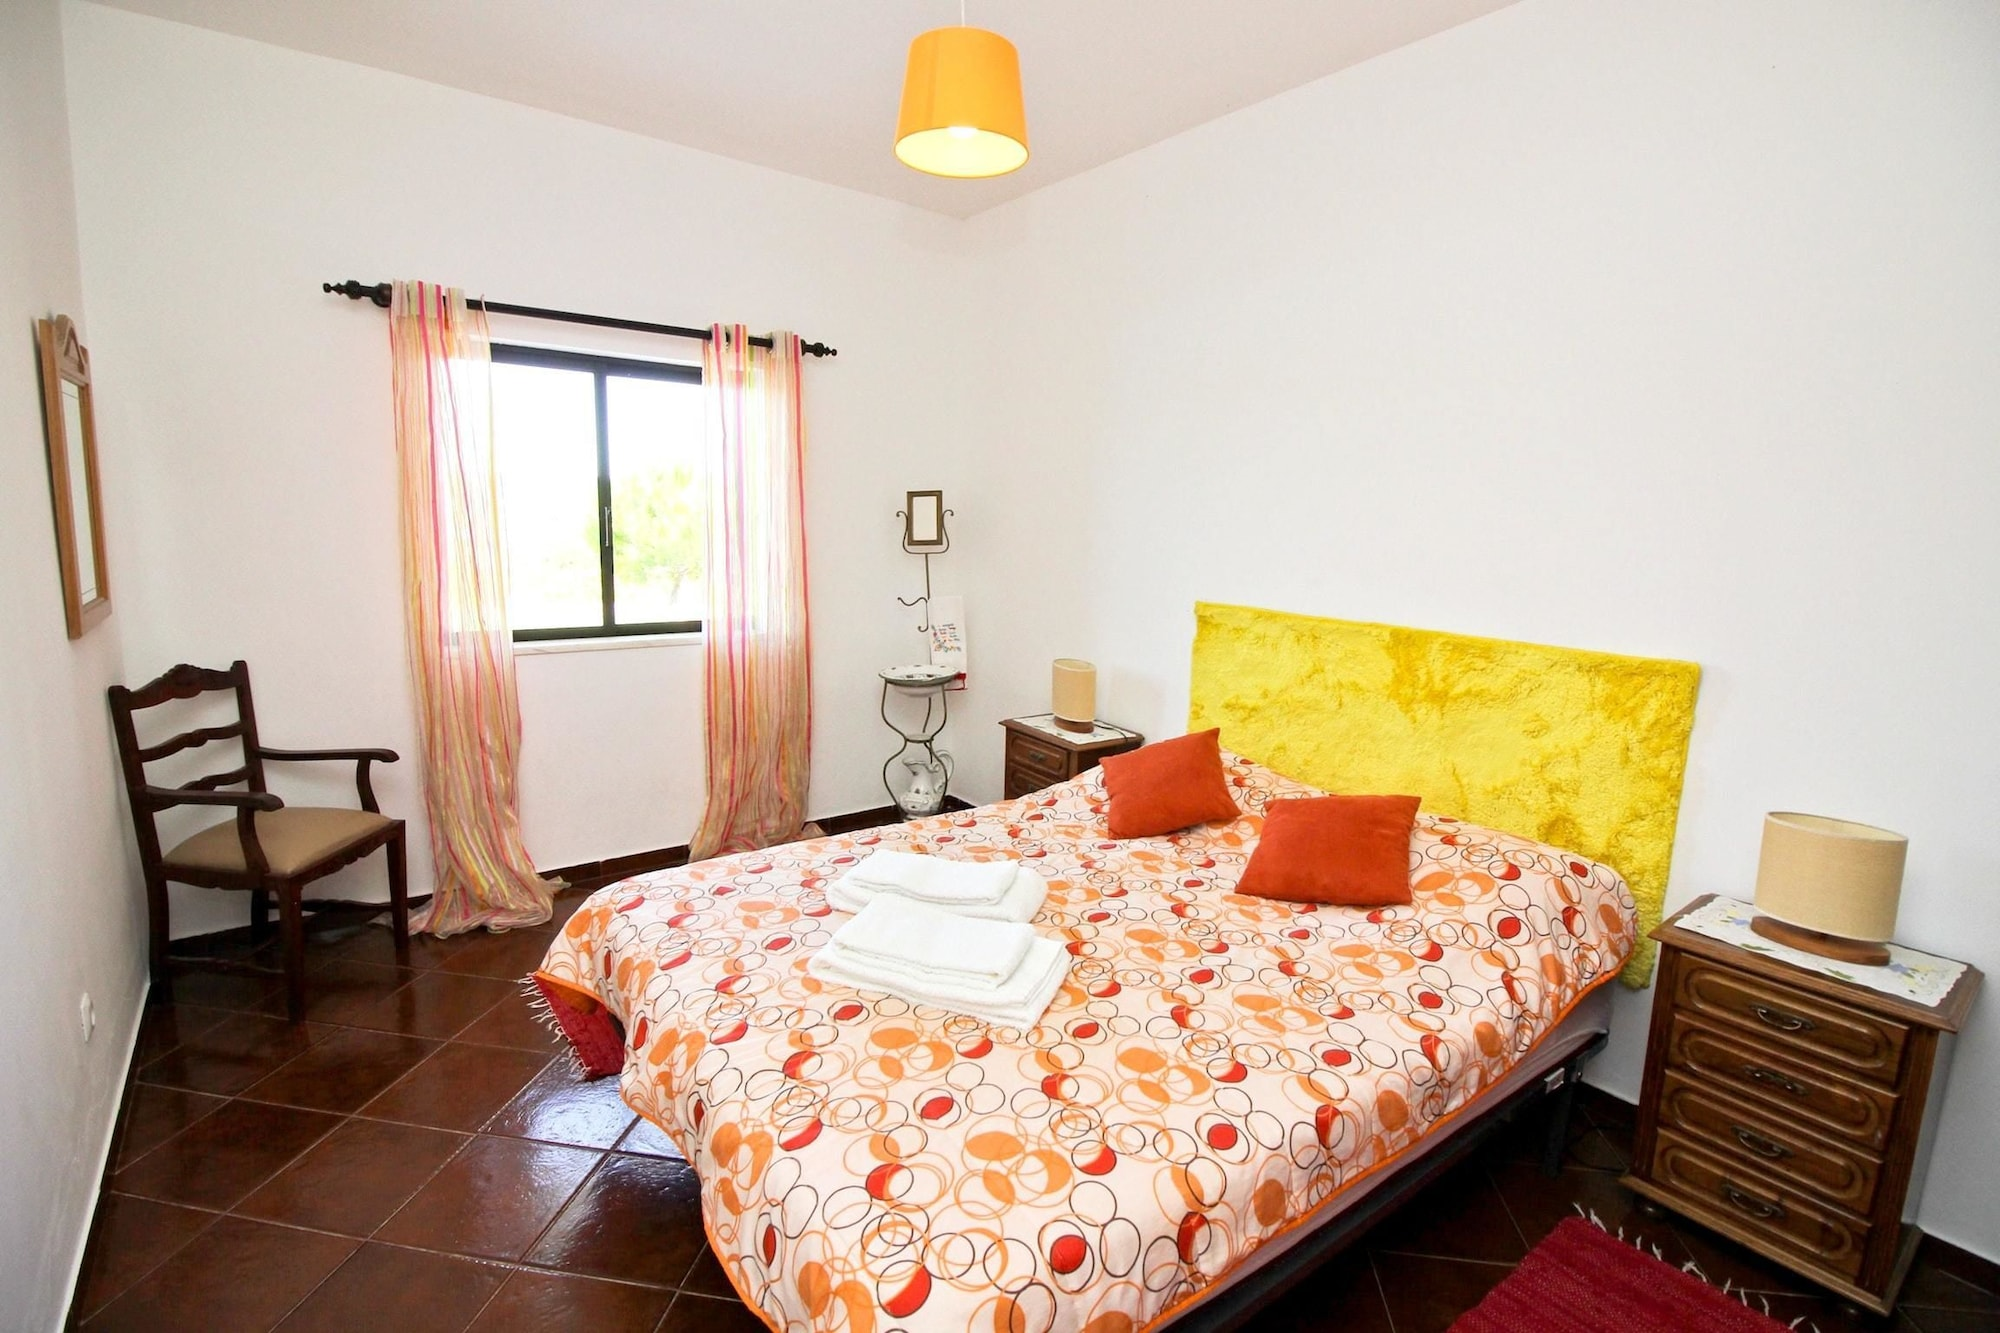 Property With 3 Bedrooms in Silves - 5 km From the Beach, Silves